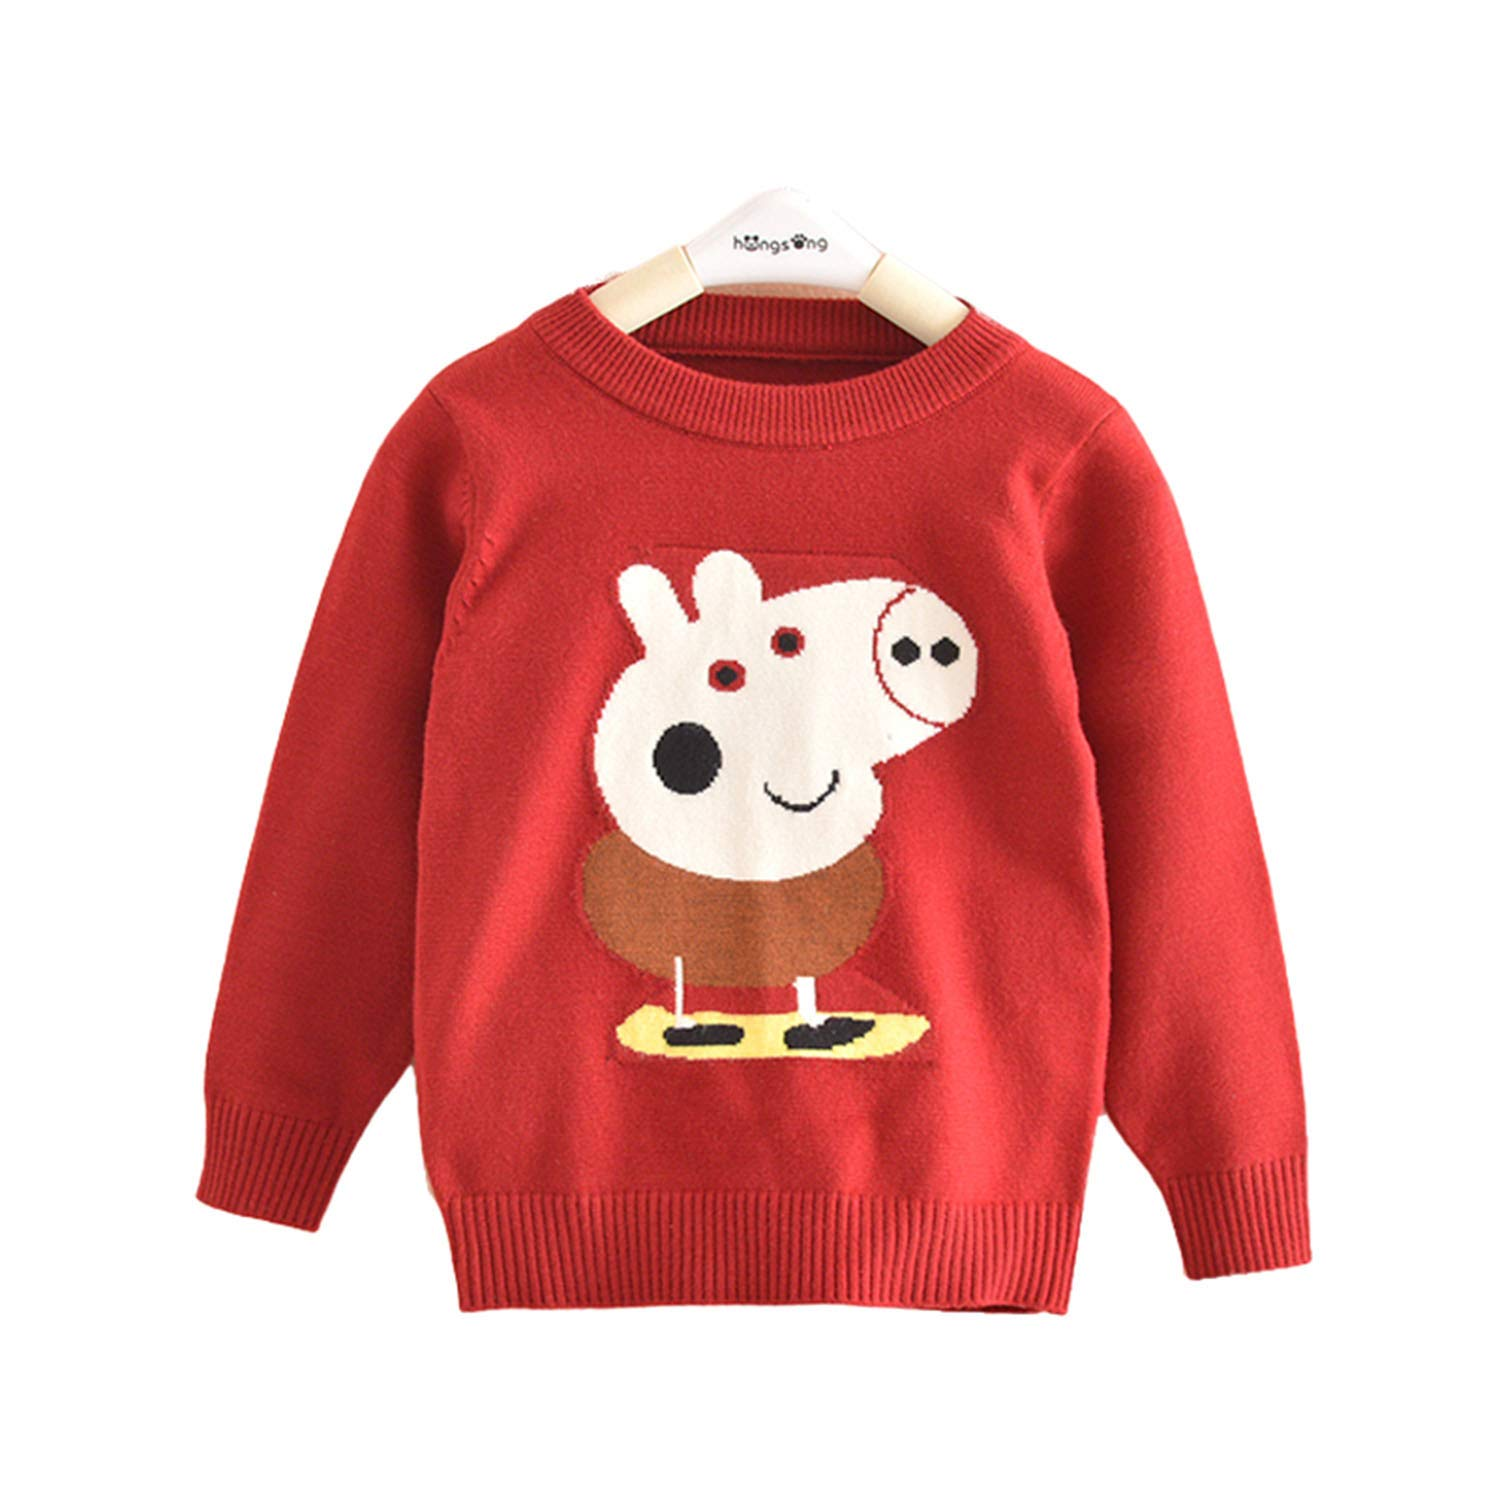 Lemonkid Trendy Kids Lovely Cotton Peppa Pig Pattern Customized Pullover Sweater 100cm/ fit 2-3 T